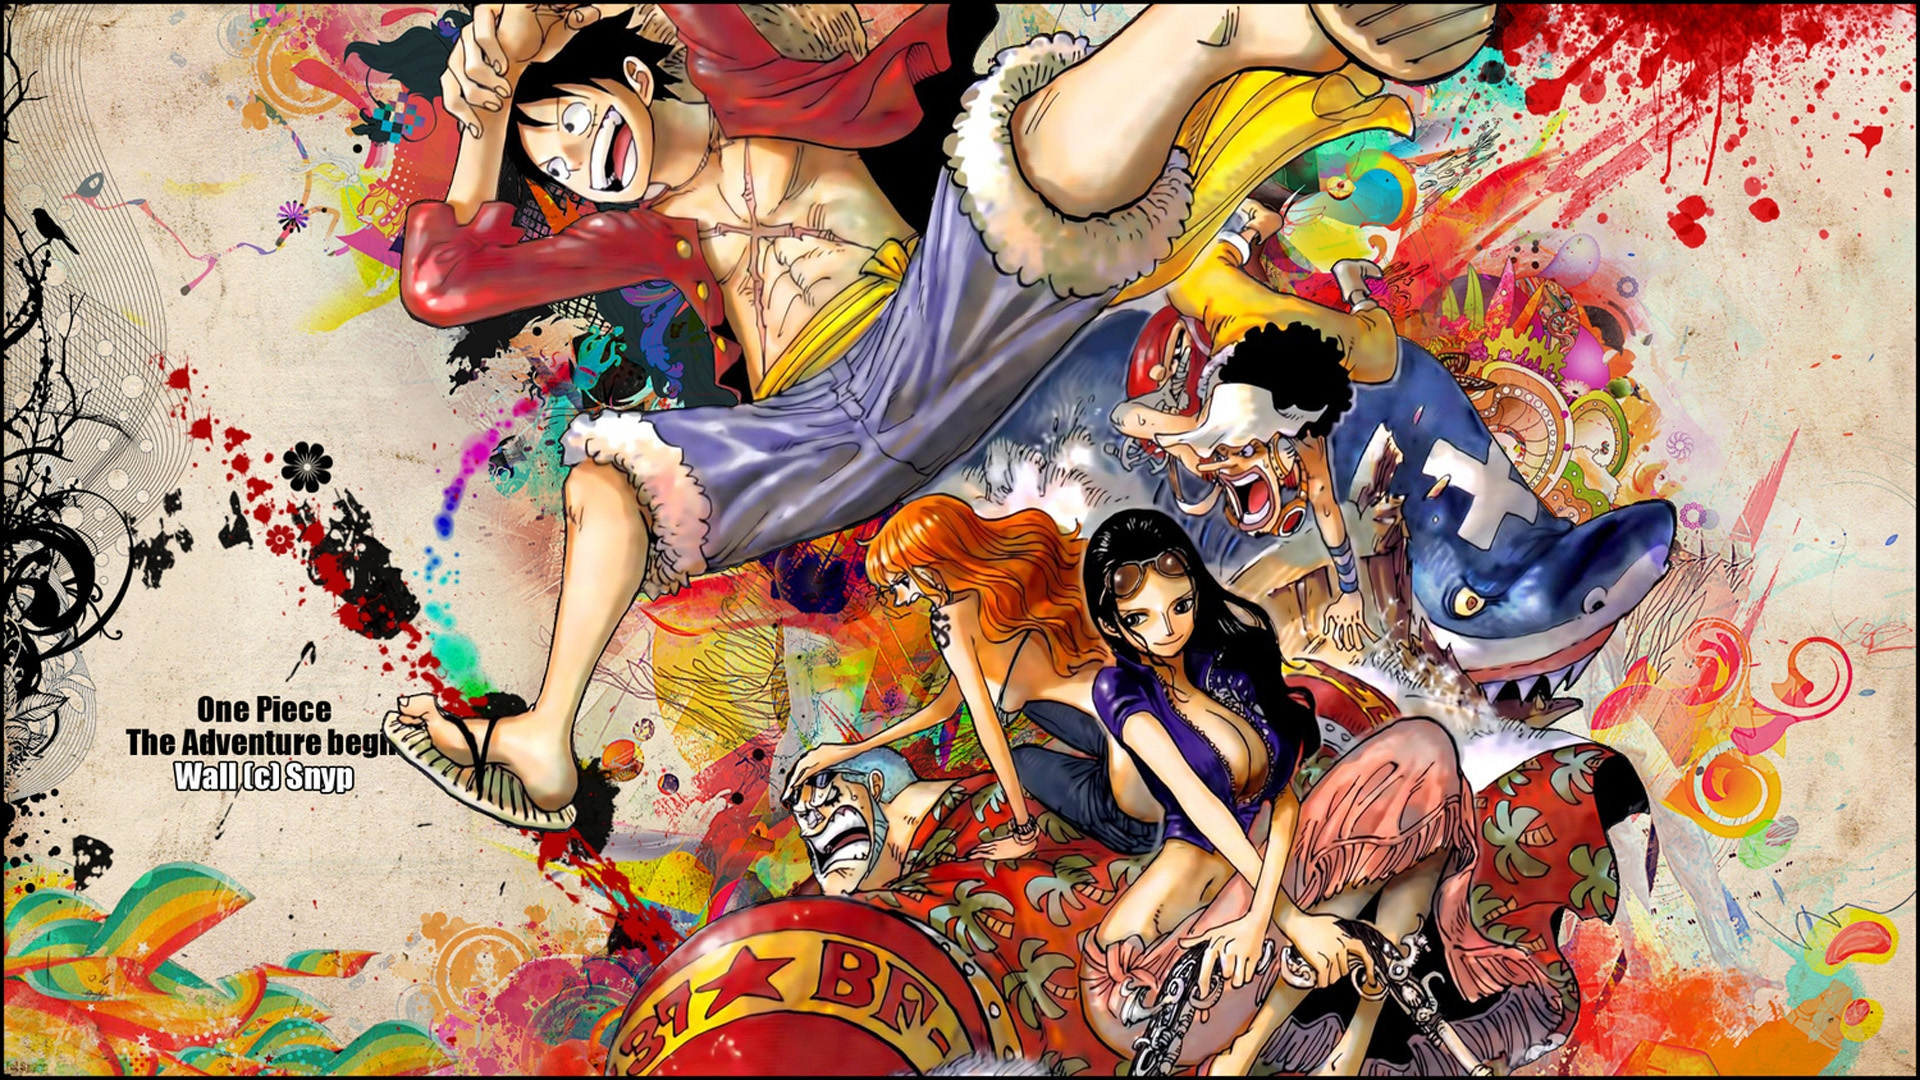 Pic new posts one piece wallpaper hd free download - One piece wallpaper ...